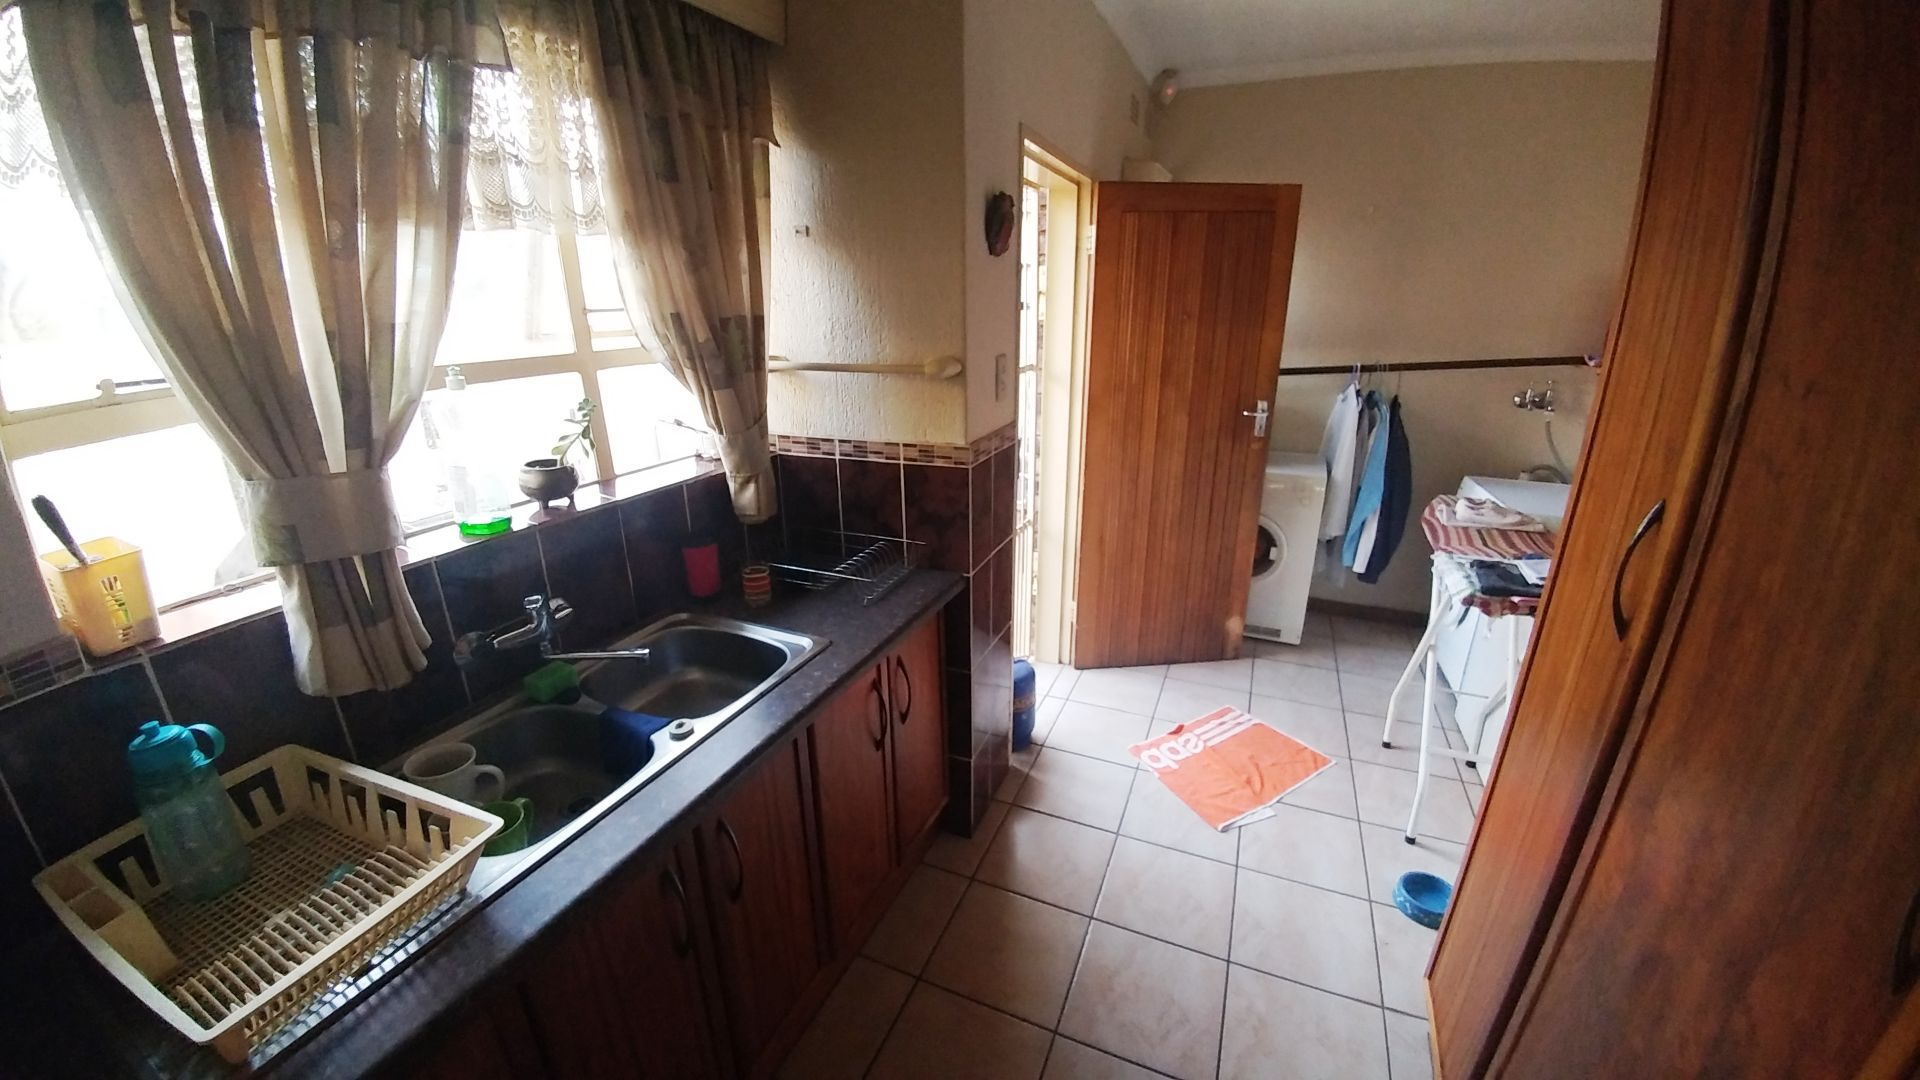 Potchefstroom Central property for sale. Ref No: 13508234. Picture no 12